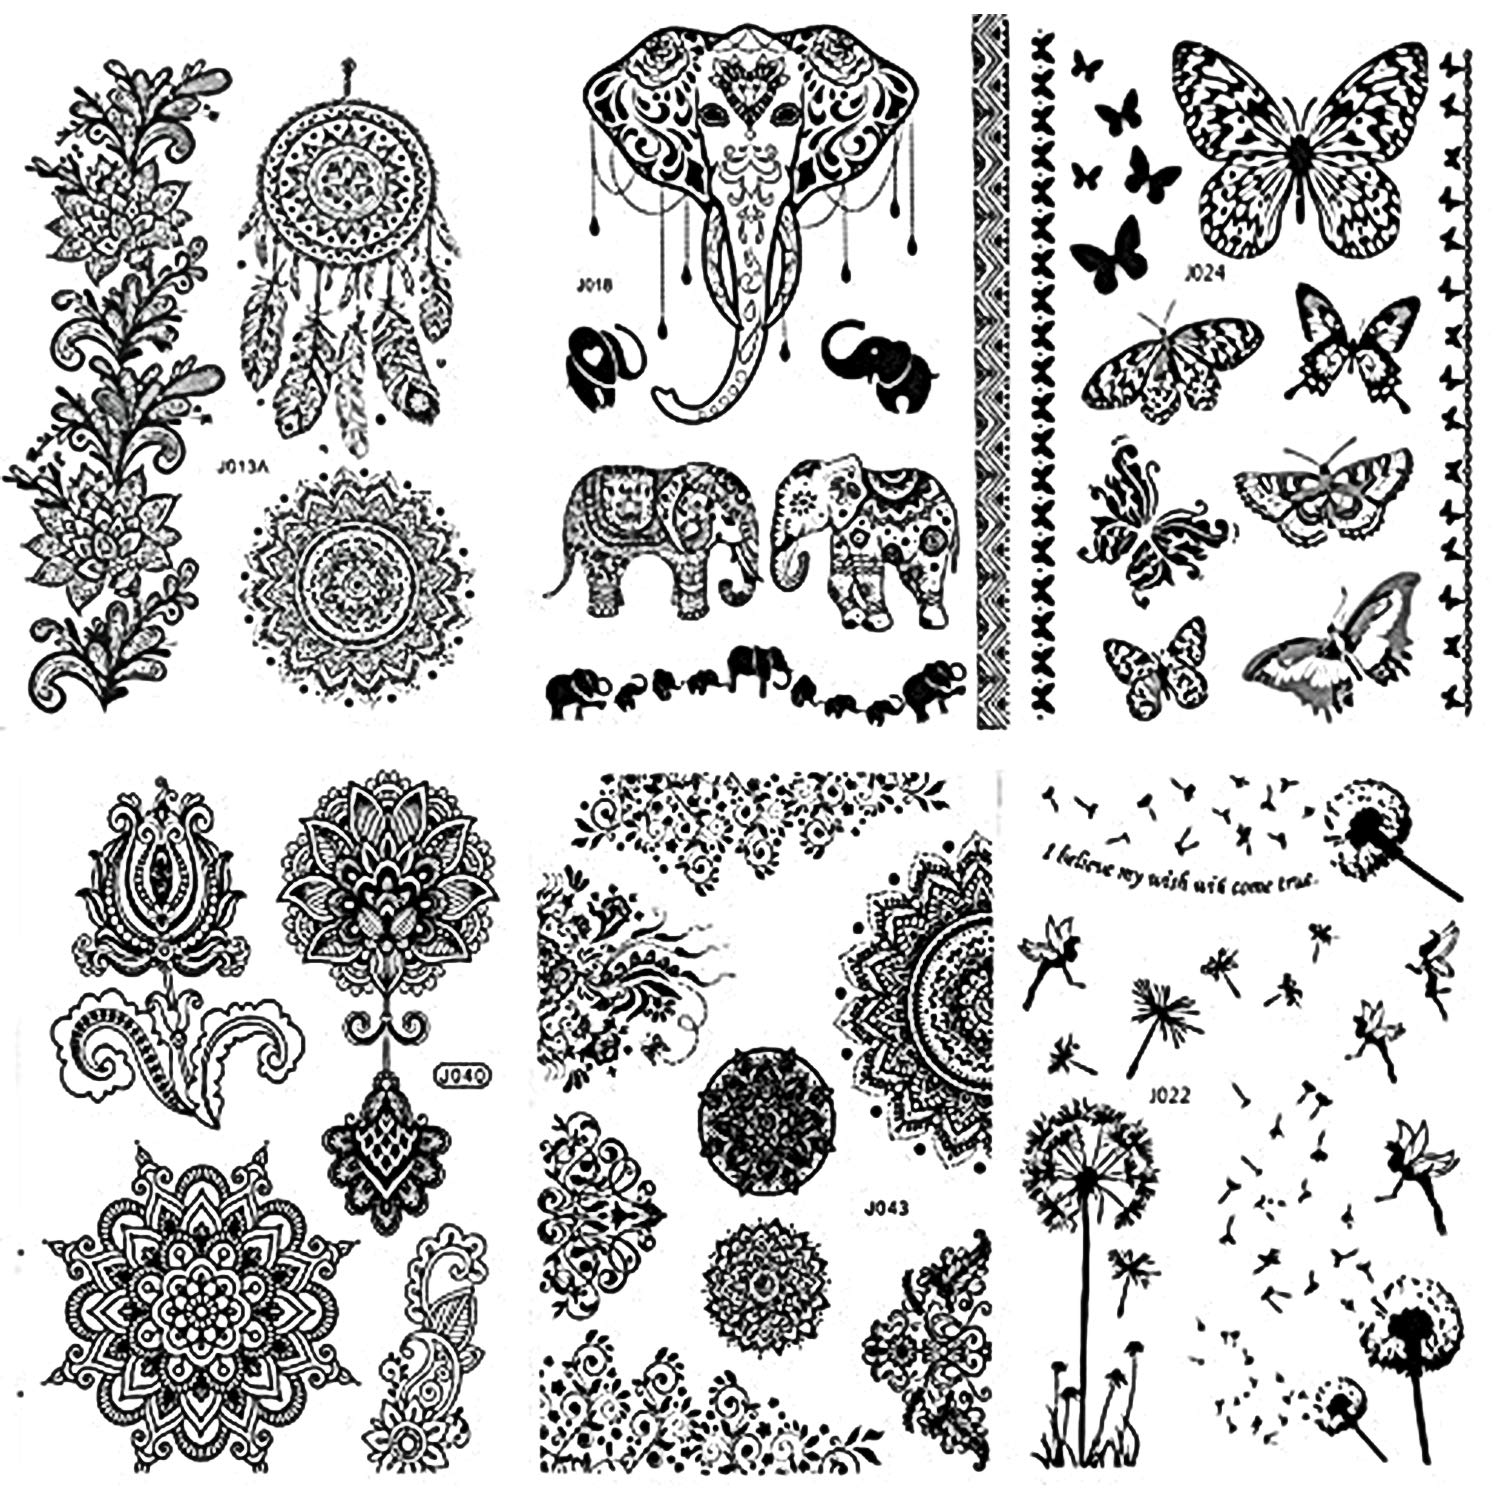 Pinkiou Henna Tattoo Stickers Lace Mehndi Temporary Tattoos for Maverick  Women Teens Girls Metallic Tattooing Pack of 6 (black)